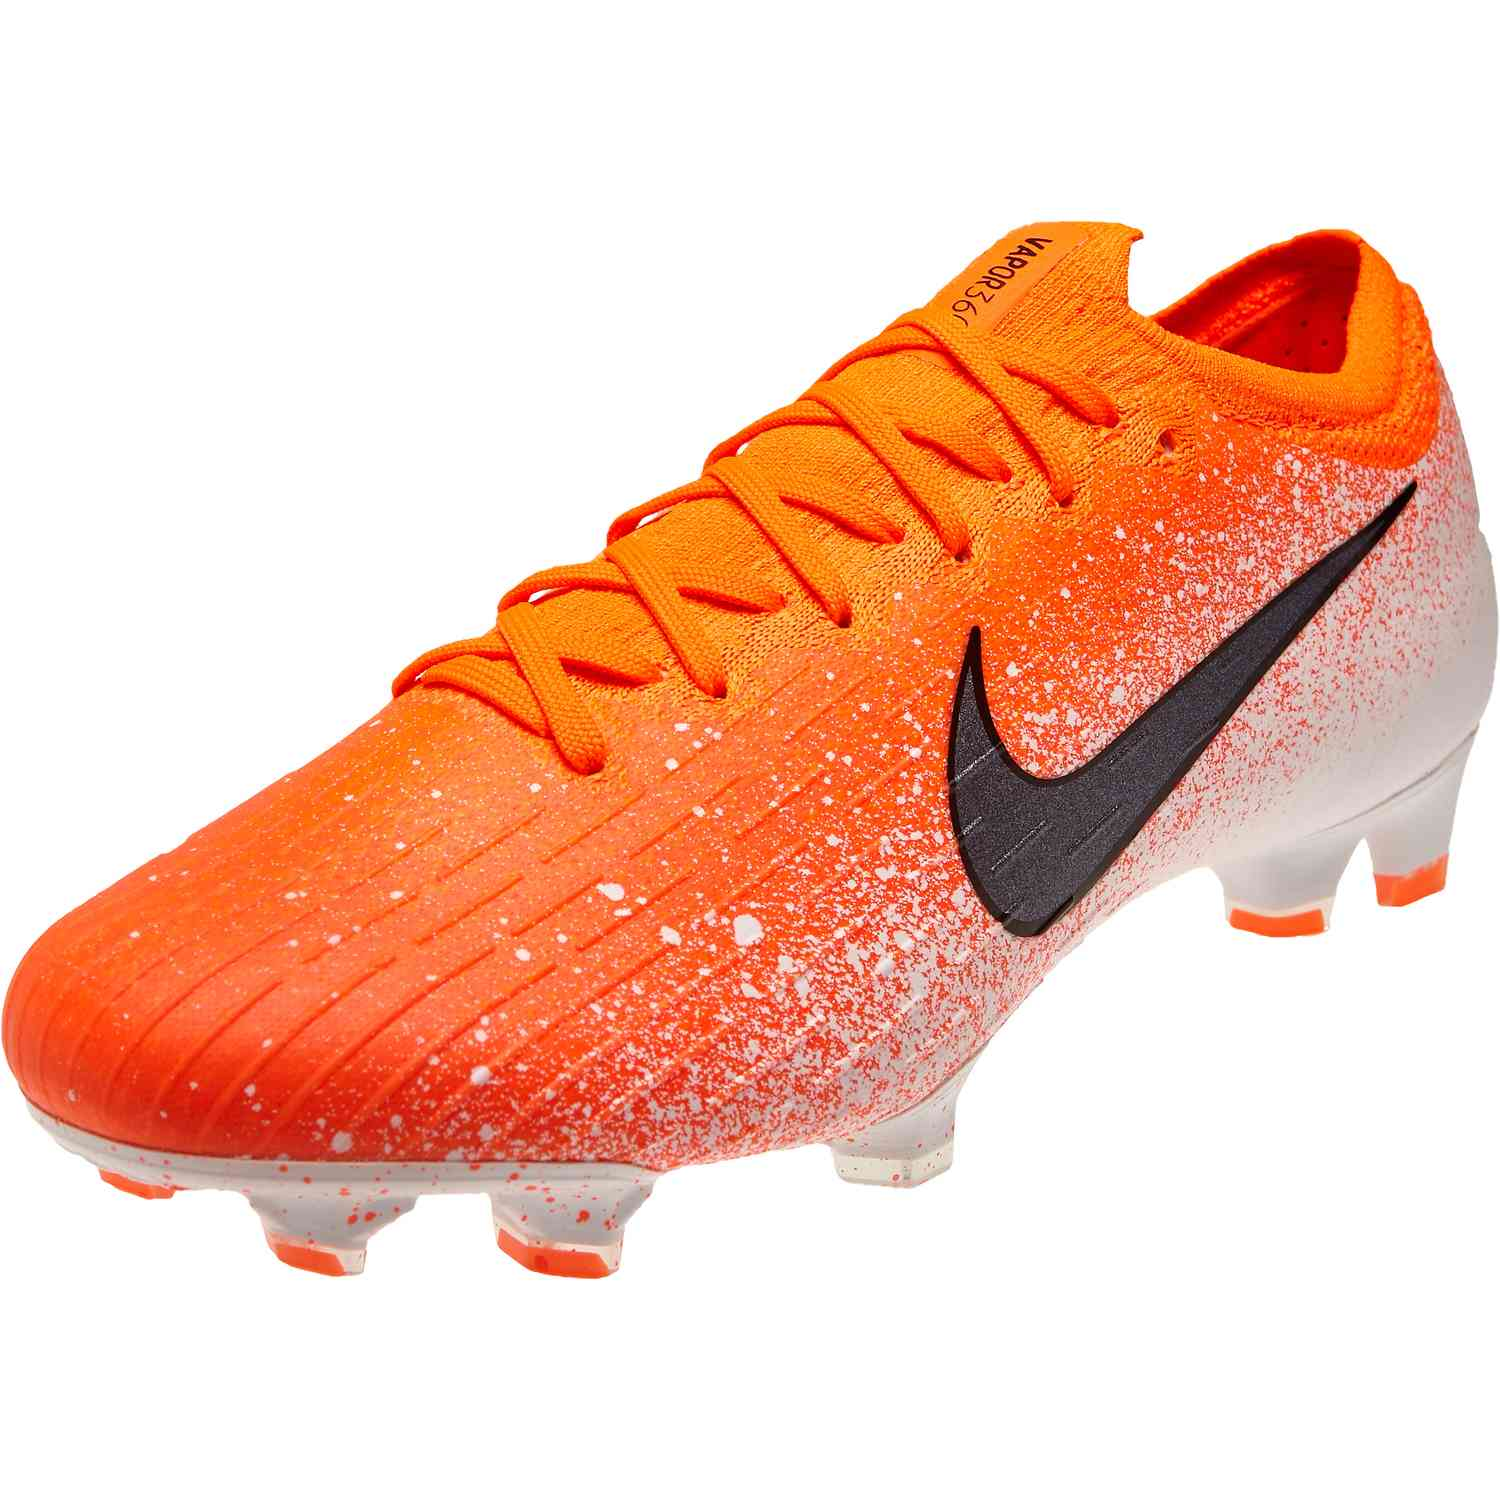 new styles super cheap new products Nike Mercurial Vapor 12 Elite FG – Euphoria Pack